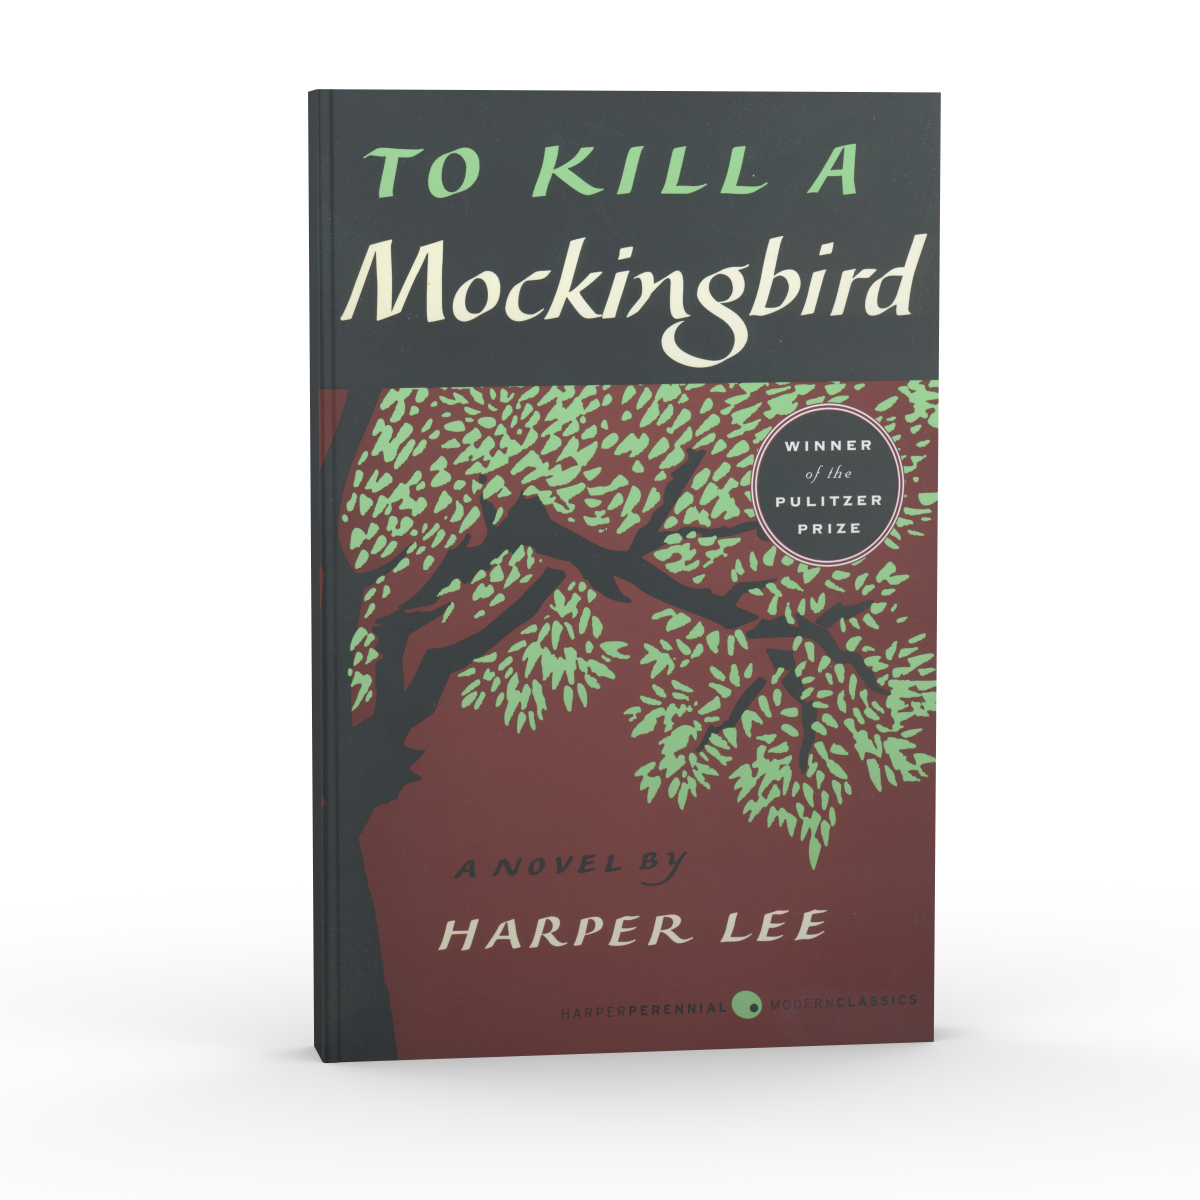 a literary analysis of the problem of injustice in to kill a mockingbird by harper lee To kill a mockingbird is a novel by harper lee published in 1960 it was immediately successful, winning the pulitzer prize, and has become a classic of modern american literature.